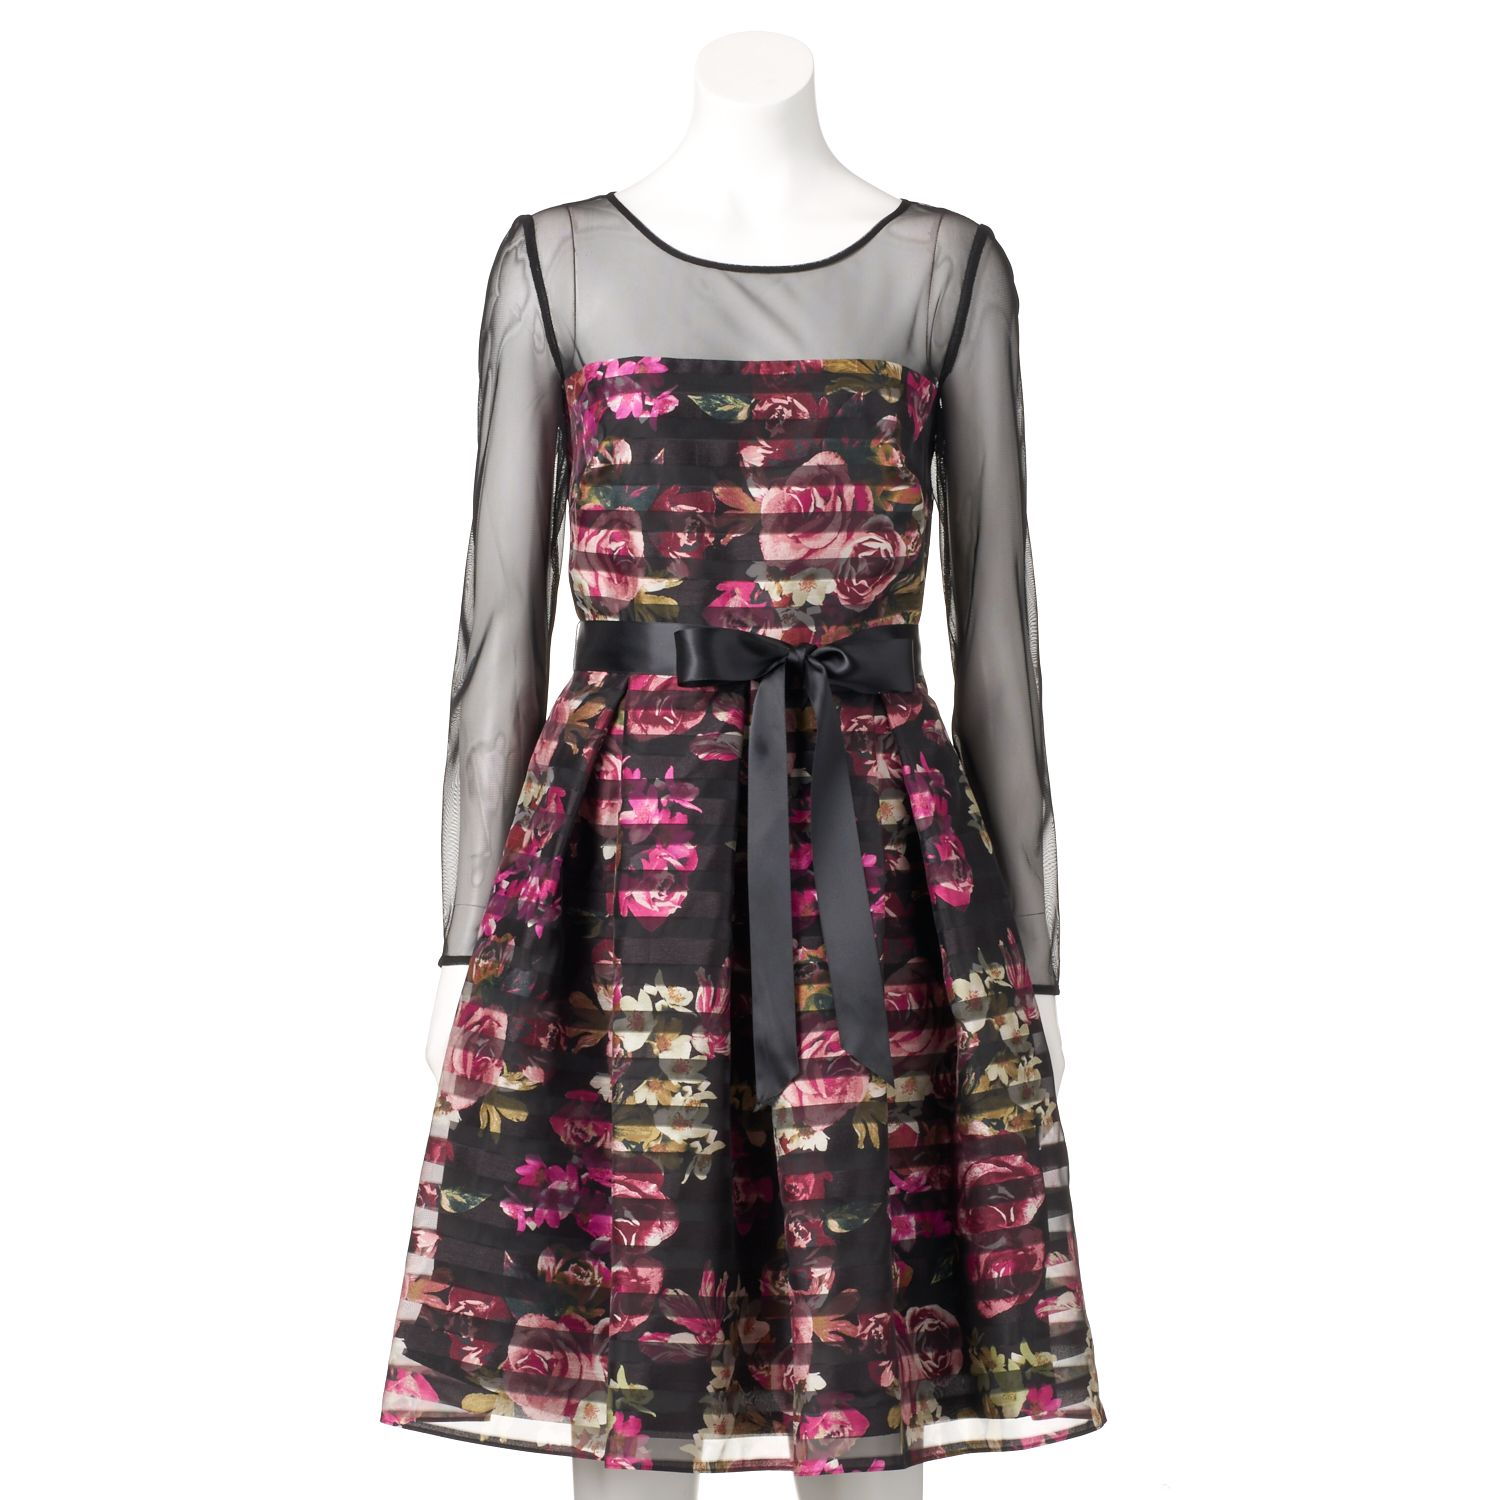 Womens Expo Floral & Mesh Striped Fit & Flare Dress